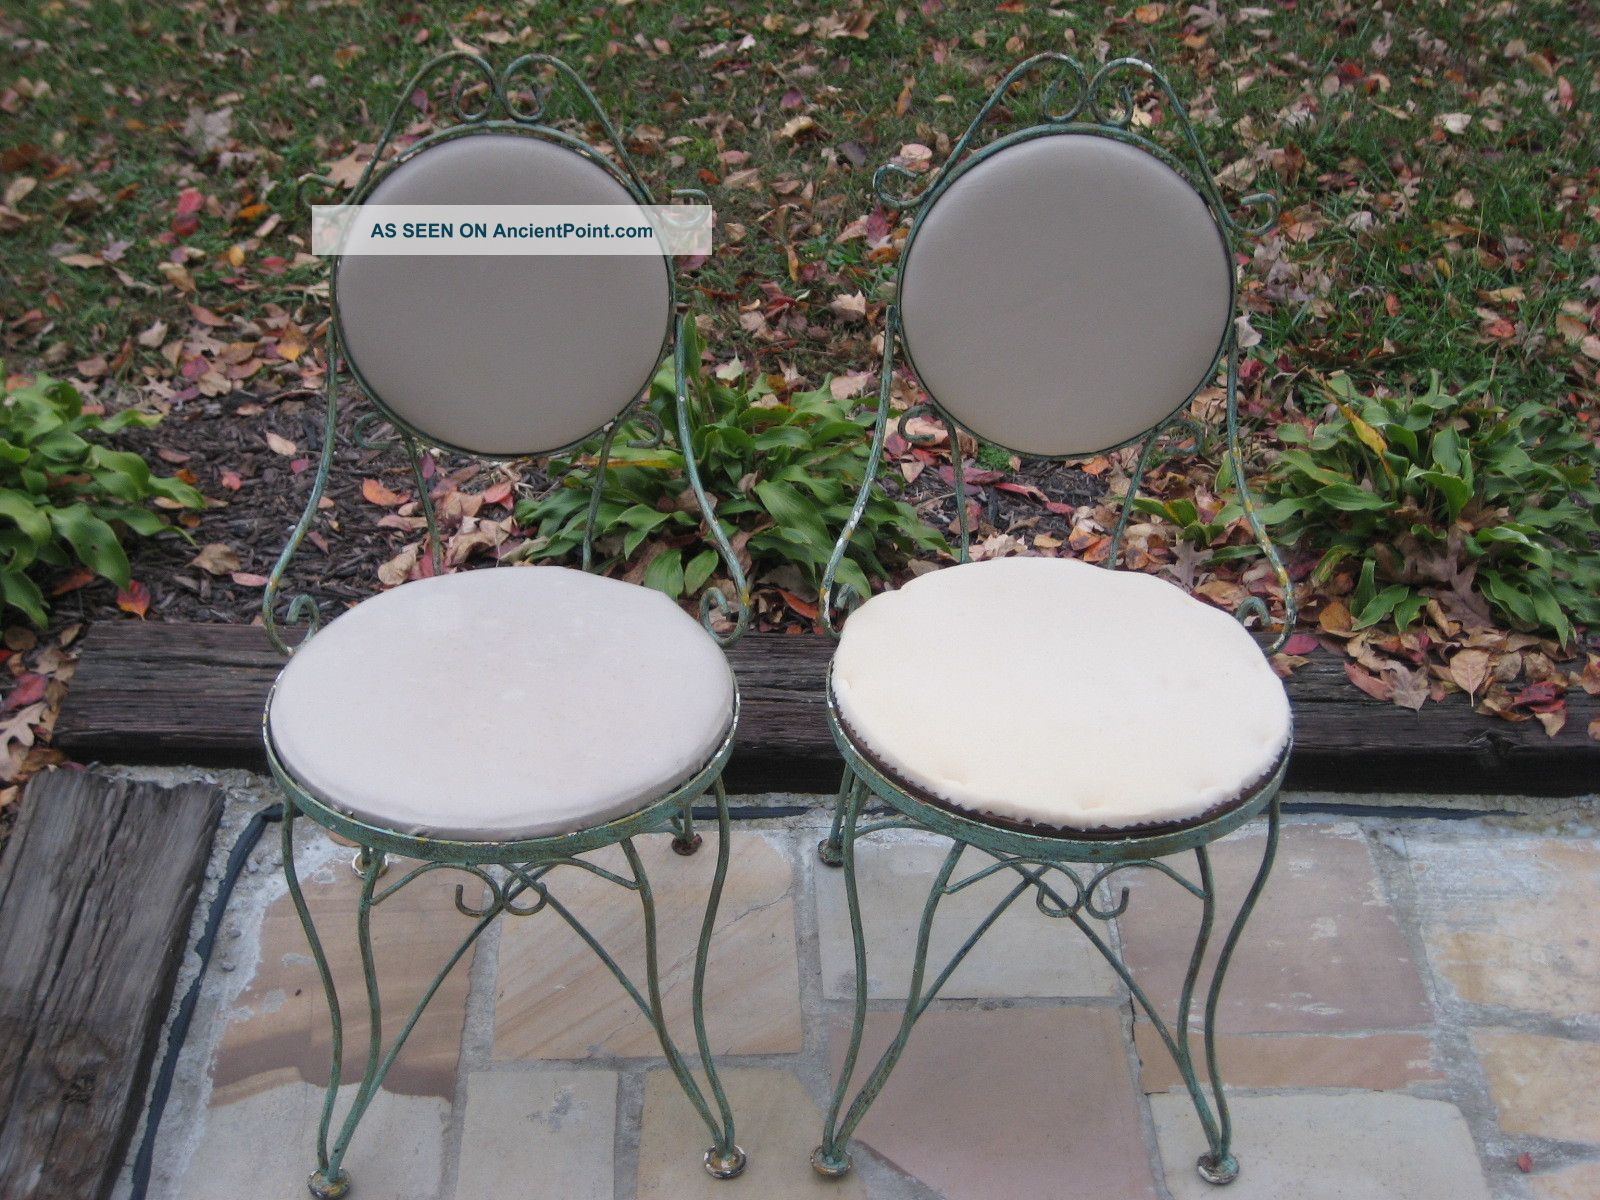 2 Vintage Antique Iron Ice Cream Bistro Chairs Metal Mid Century French Country Post-1950 photo